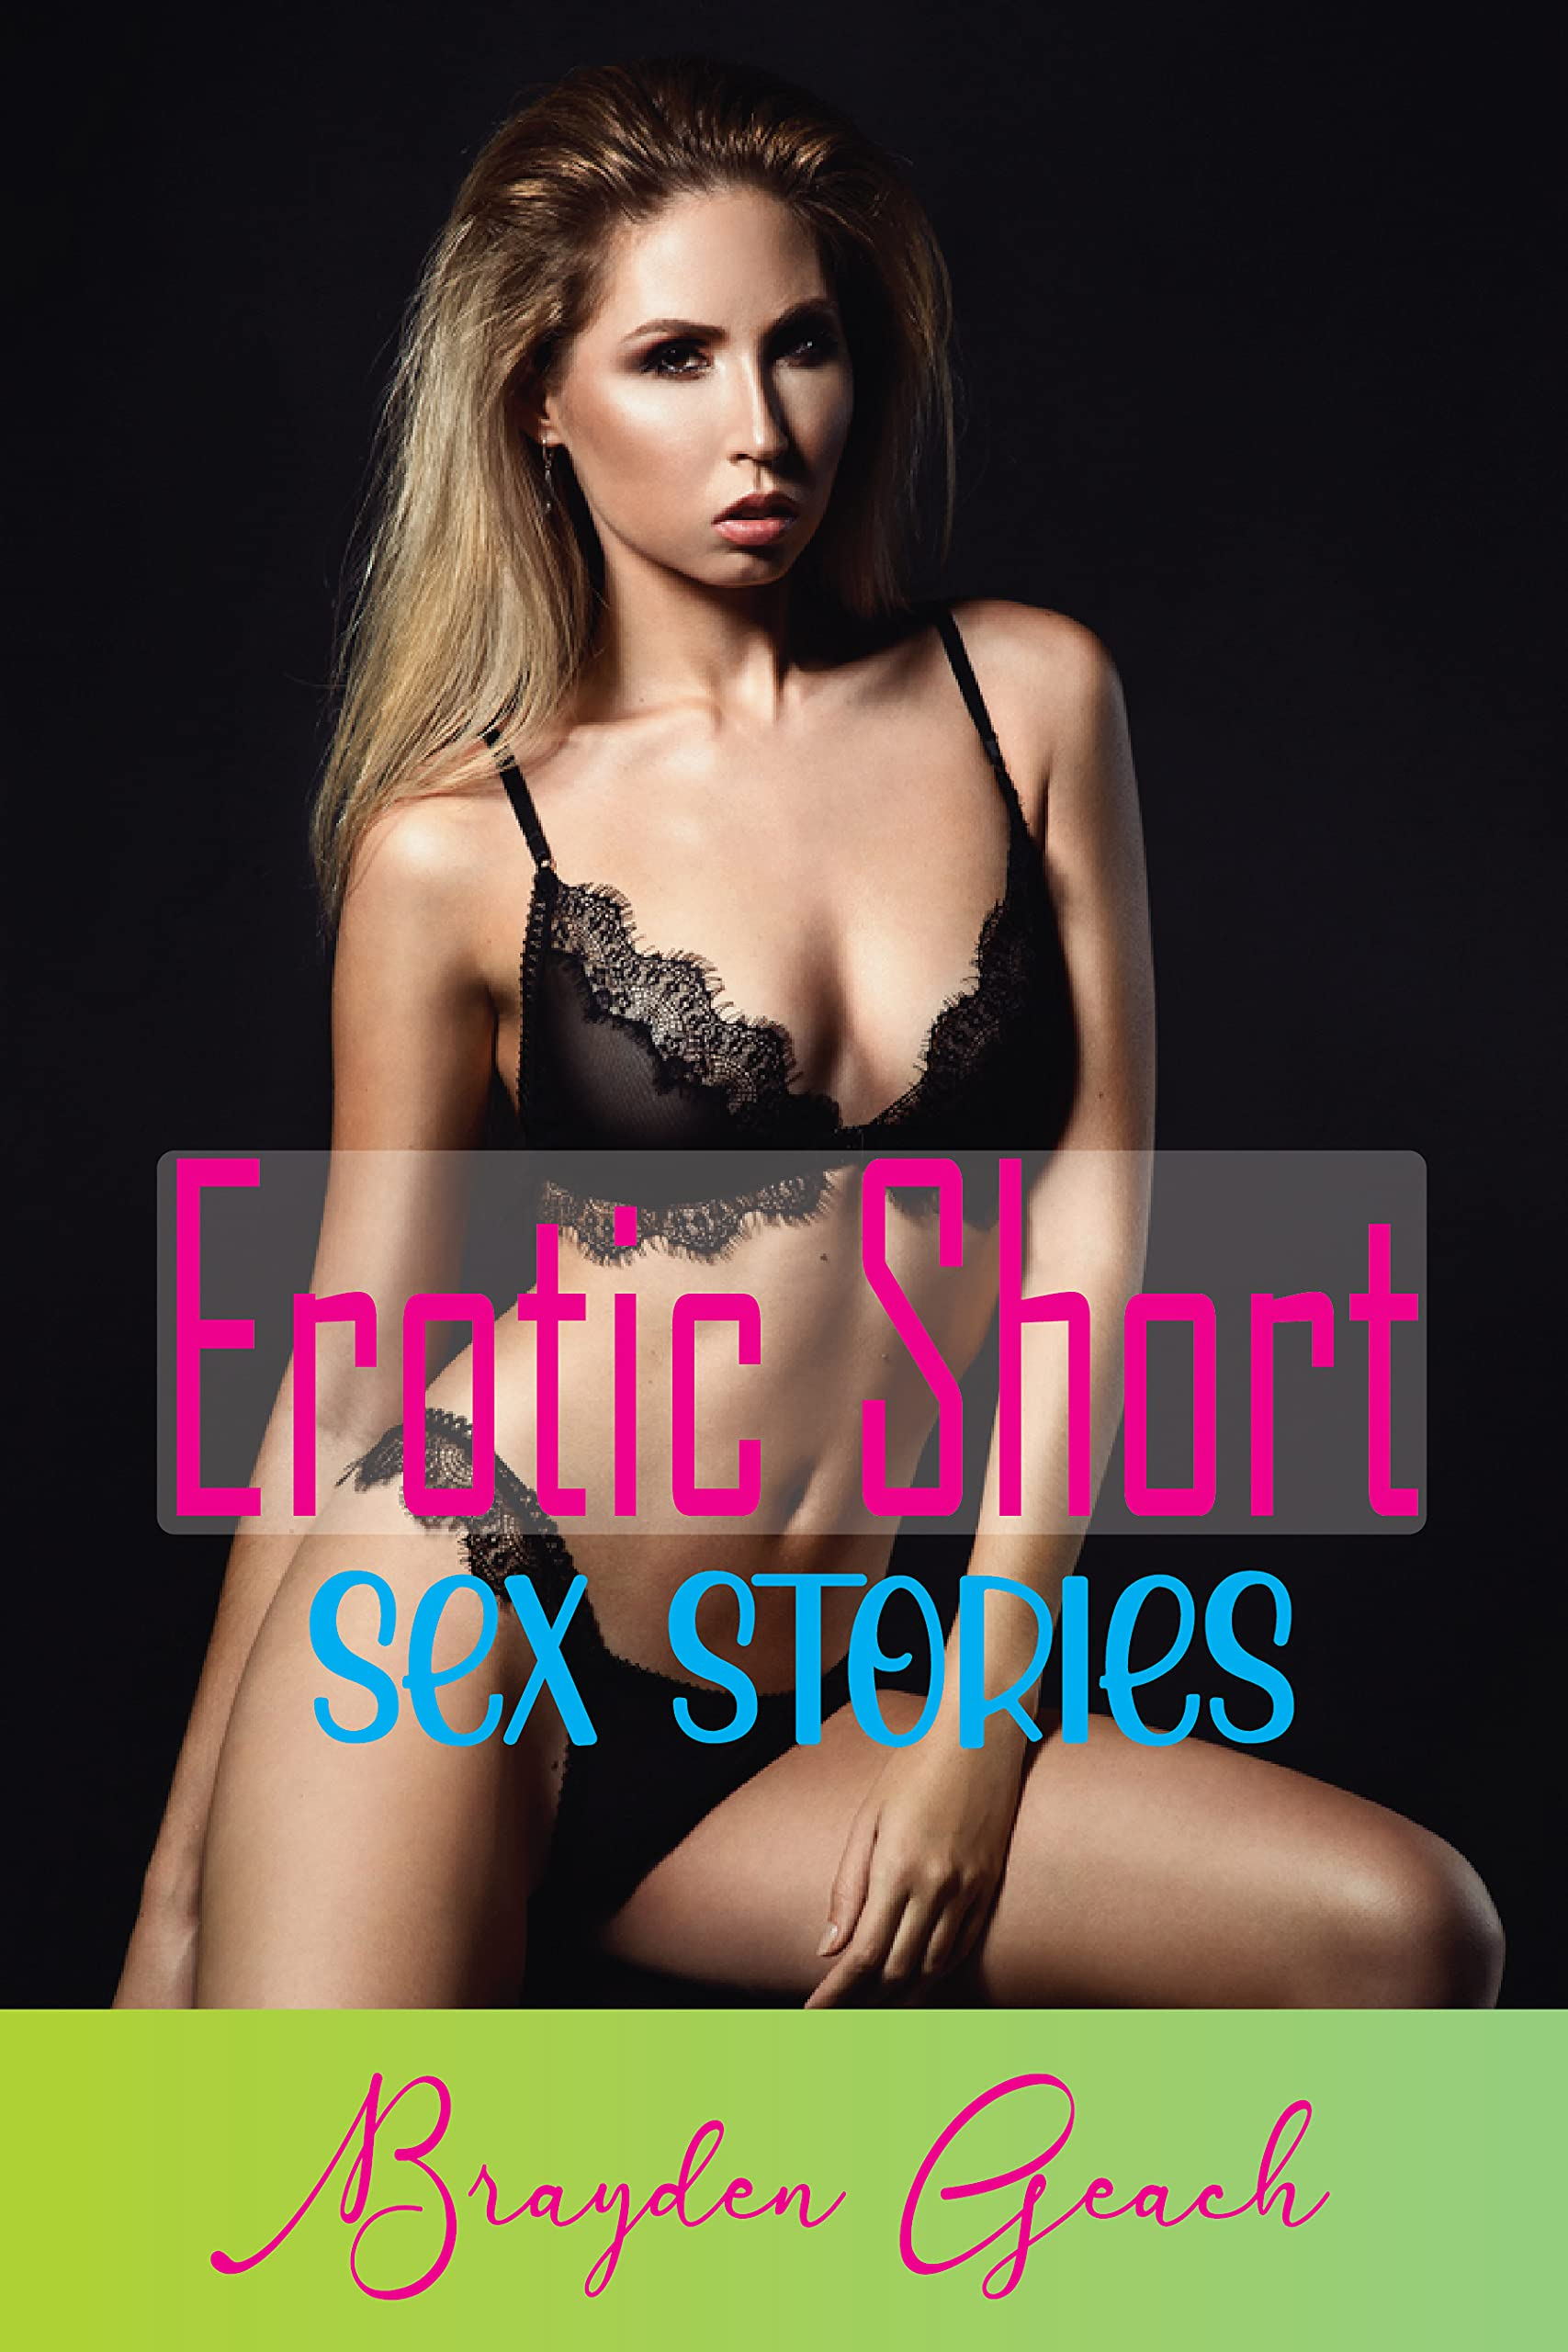 Erotic Short Sex Stories: The Best Collection of Hot and, Dirty,Dream,Alternative ultimate adult short sexy stories Romance